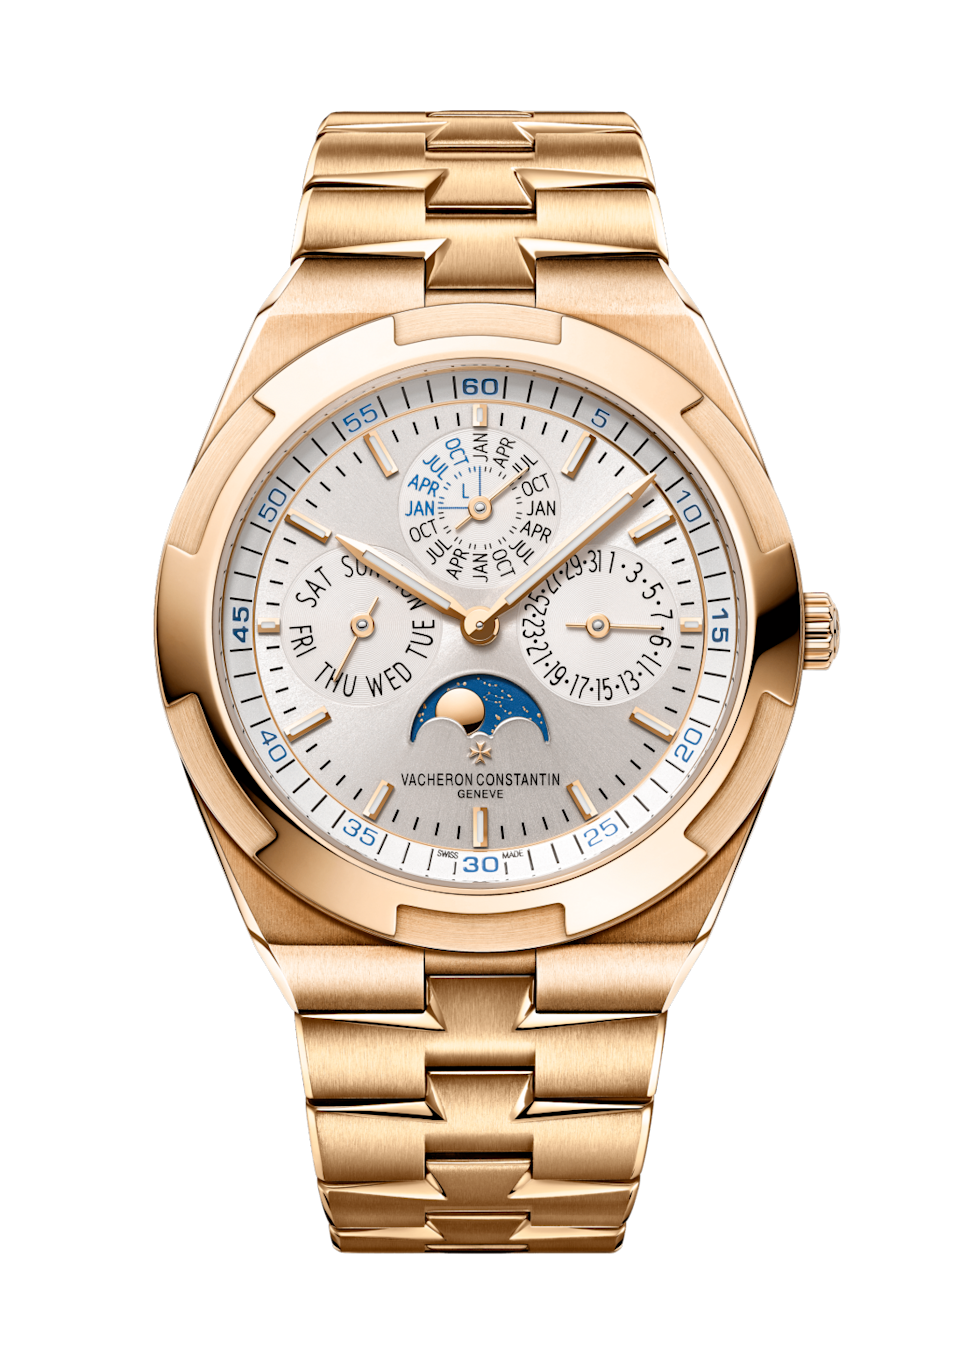 """<p><strong>Vacheron Constantin</strong></p><p>vacheron-constantin.com</p><p><strong>$97000.00</strong></p><p><a href=""""https://www.vacheron-constantin.com/us/en/collections/overseas/4300v-120r-b064.html"""" rel=""""nofollow noopener"""" target=""""_blank"""" data-ylk=""""slk:Shop Now"""" class=""""link rapid-noclick-resp"""">Shop Now</a></p><p>Vacheron Constantin released new Overseas watches this year, including this ultra-thin rose gold. The bracelet links subtly reveal the Vacheron Maltese cross logo and the perpetual calendar will reveal the correct date until 2100. </p><p>Case size: 41.5 mm</p>"""